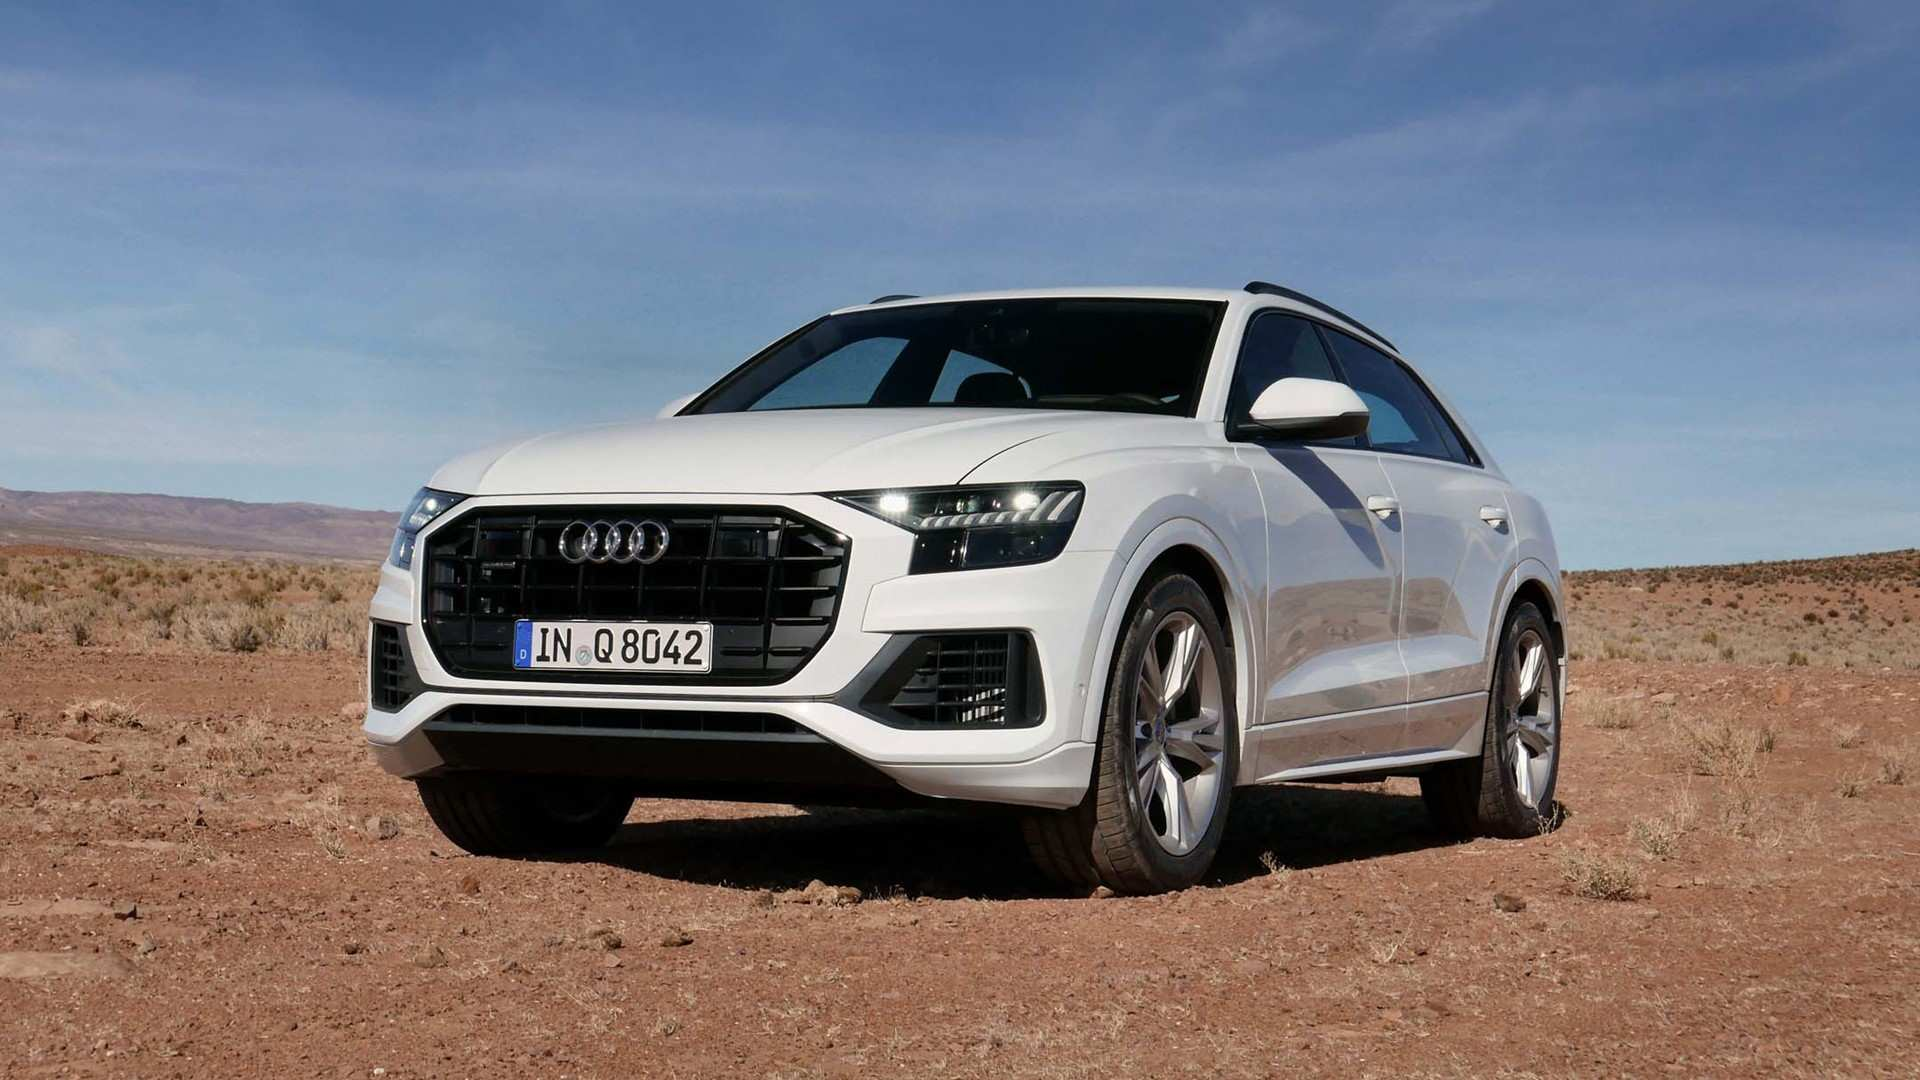 31 All New 2019 Audi Q8 Price Review Style for 2019 Audi Q8 Price Review